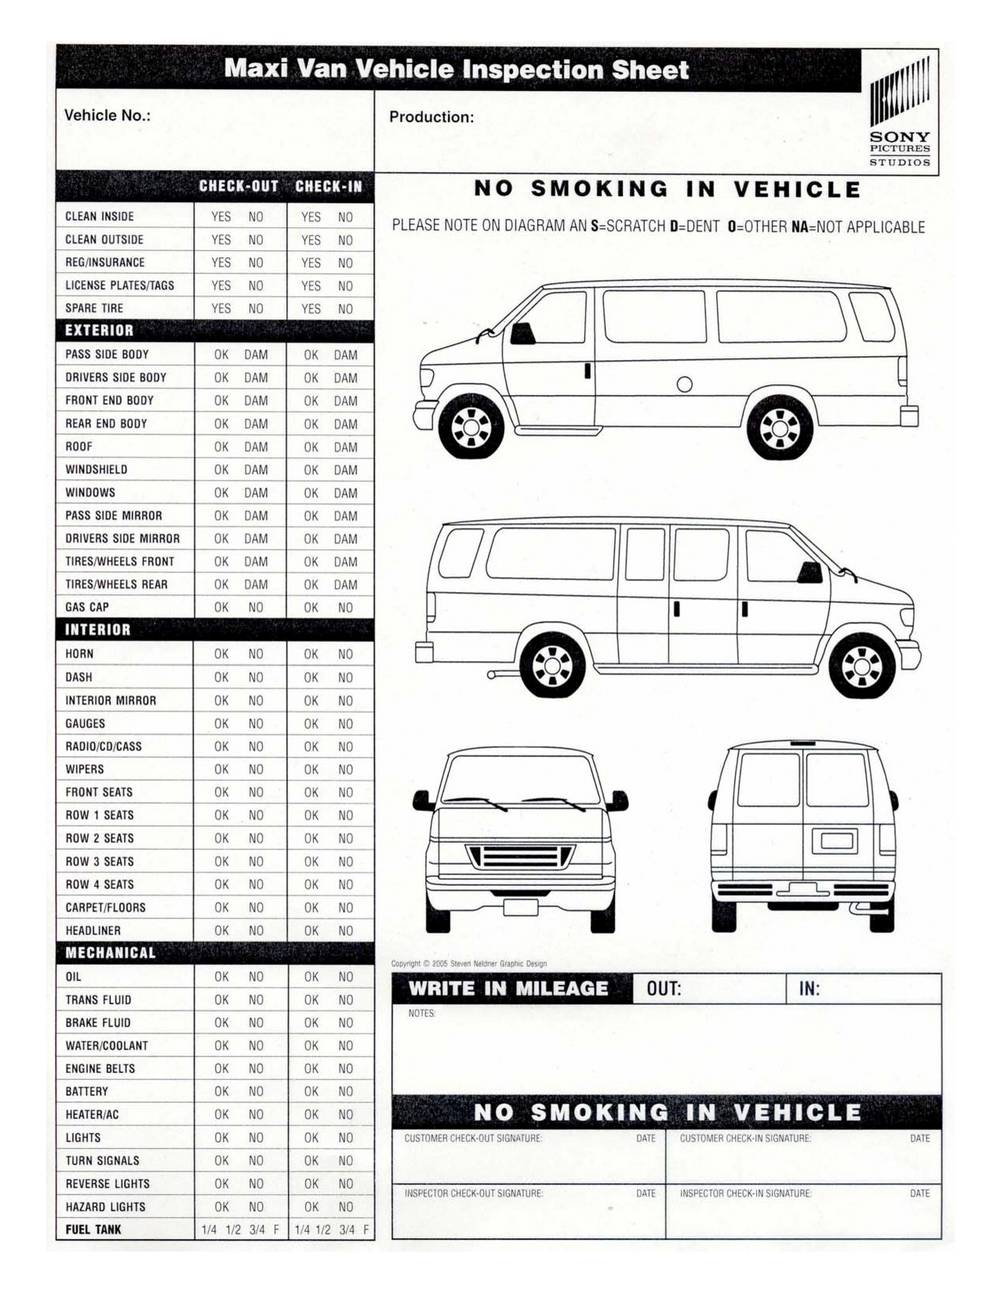 Vehicle Inspection Template Free